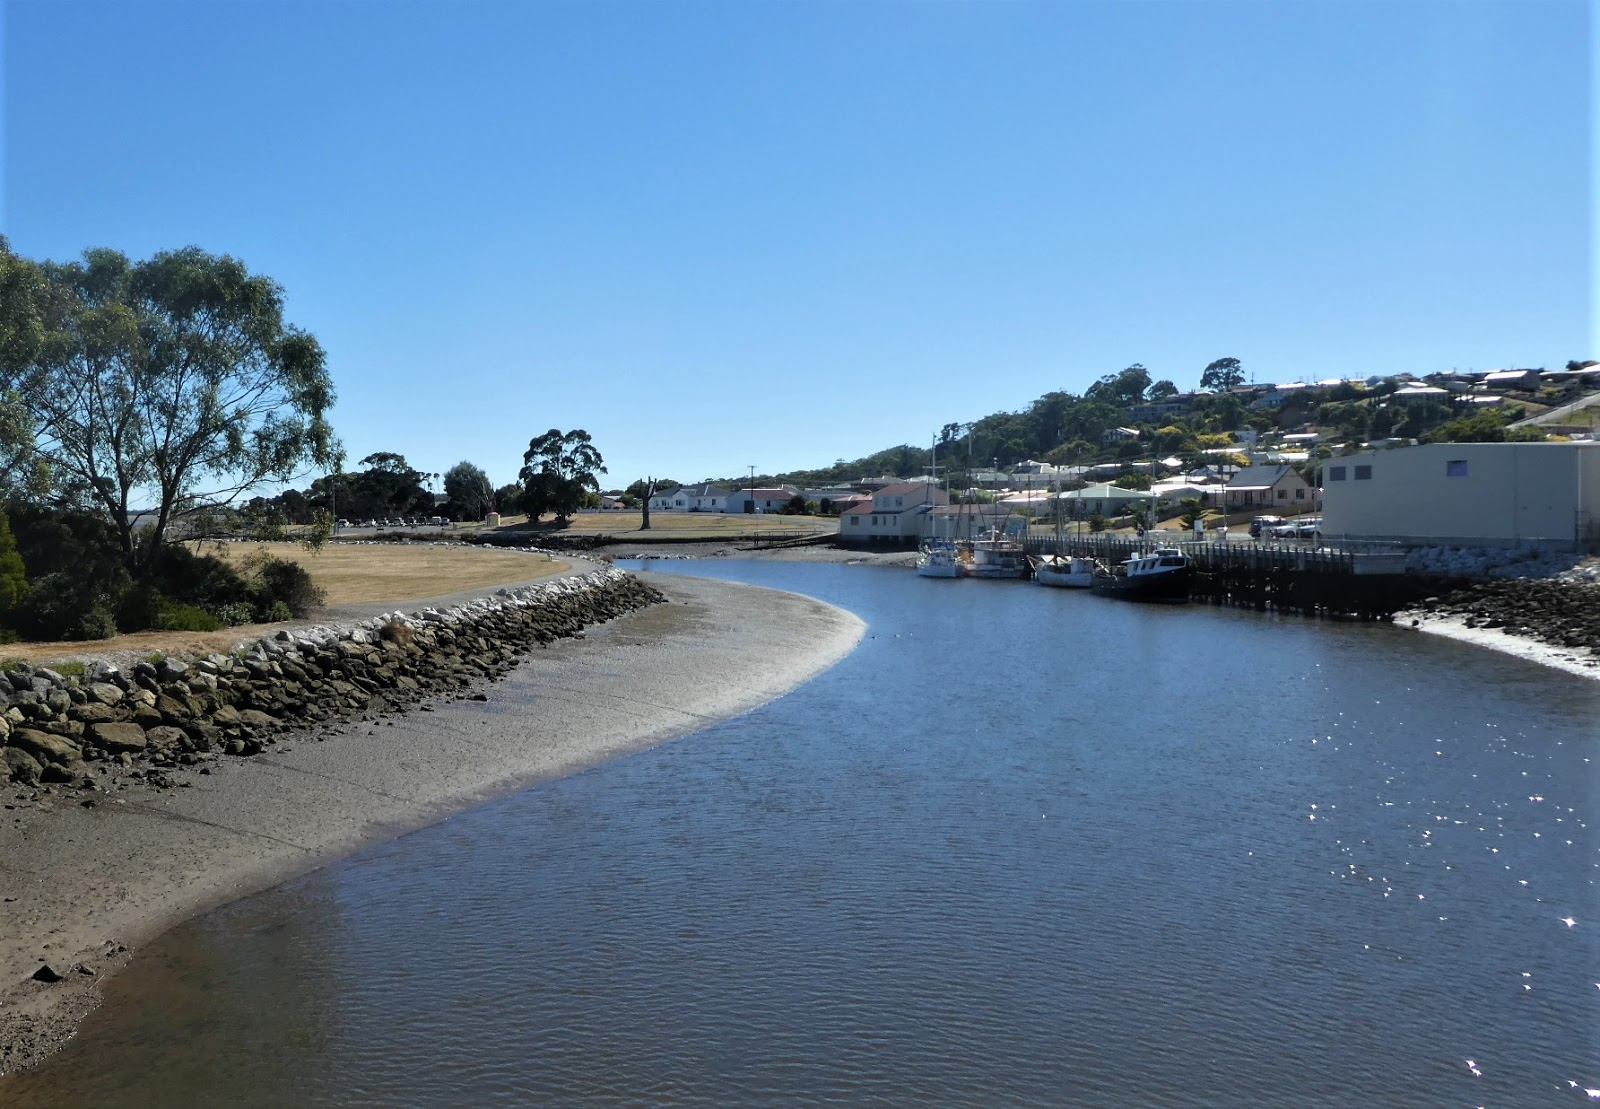 MobileMarshies: ANOTHER QUICK LOOK ABOUT A TOWN - SMITHTON